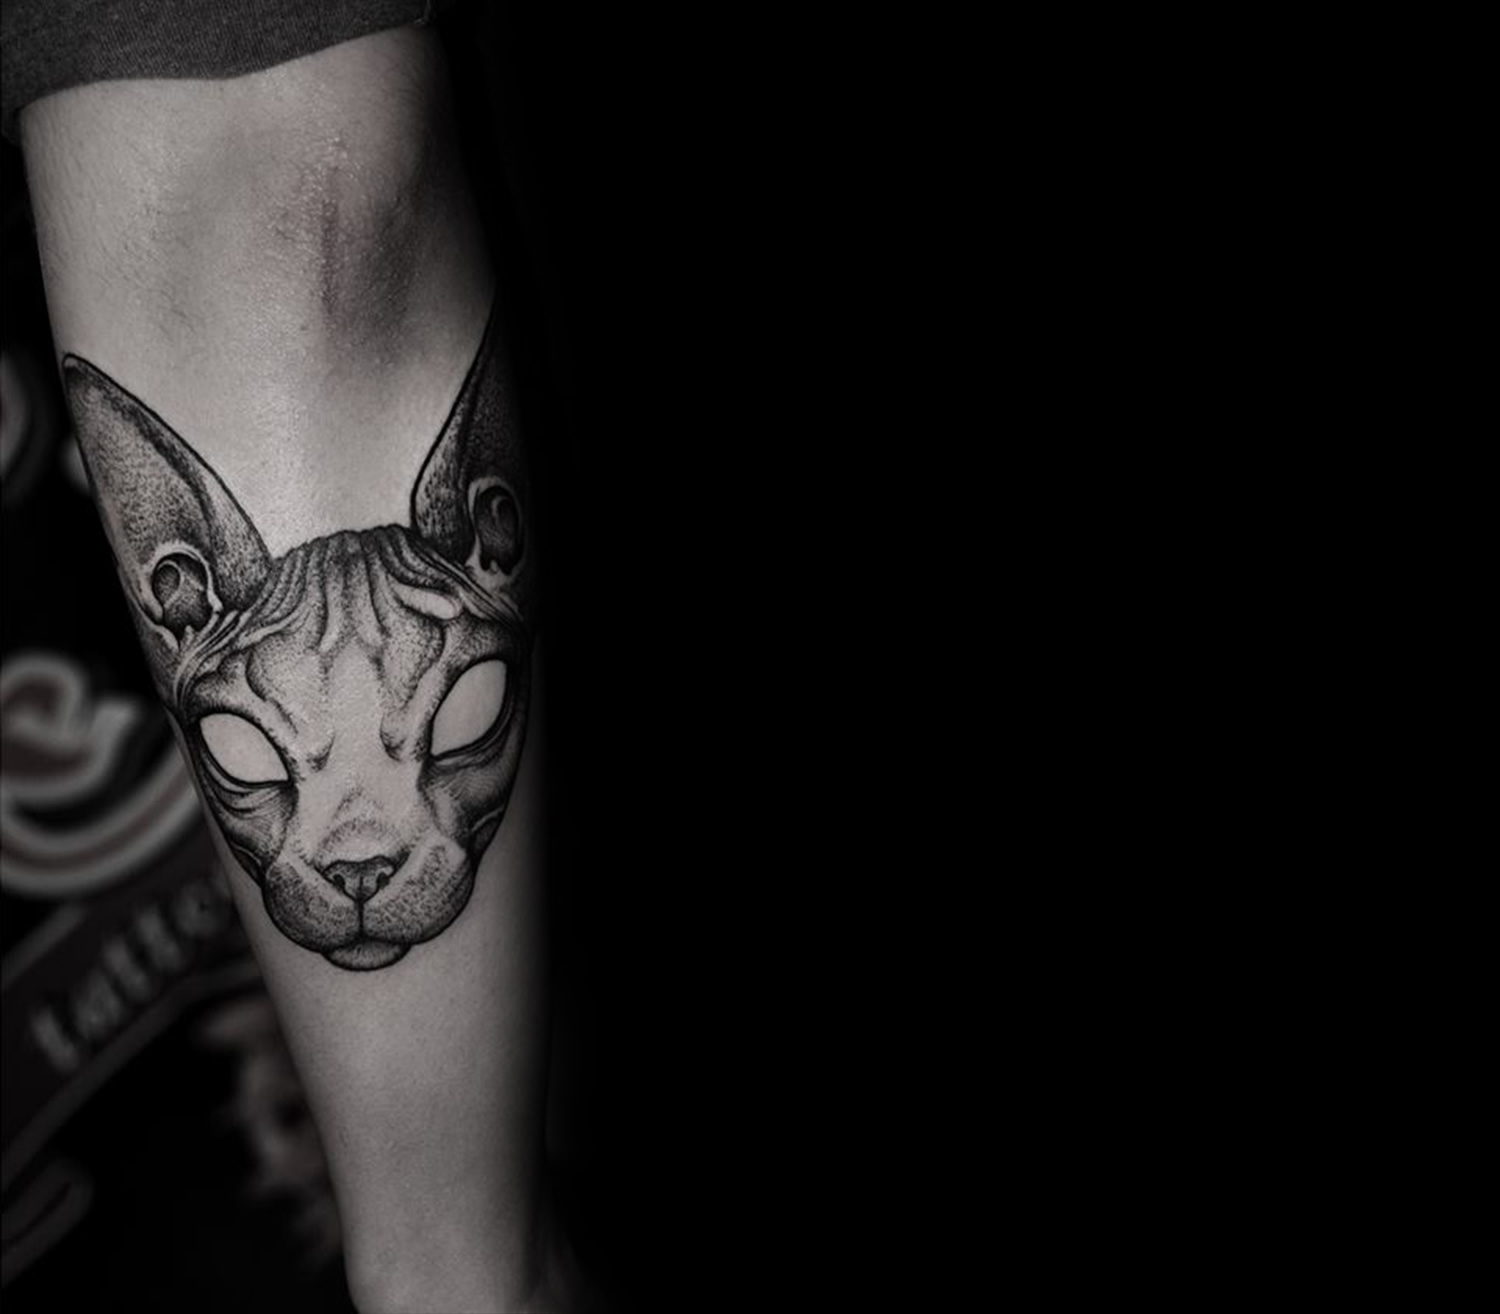 Sphynx cat by grindesign